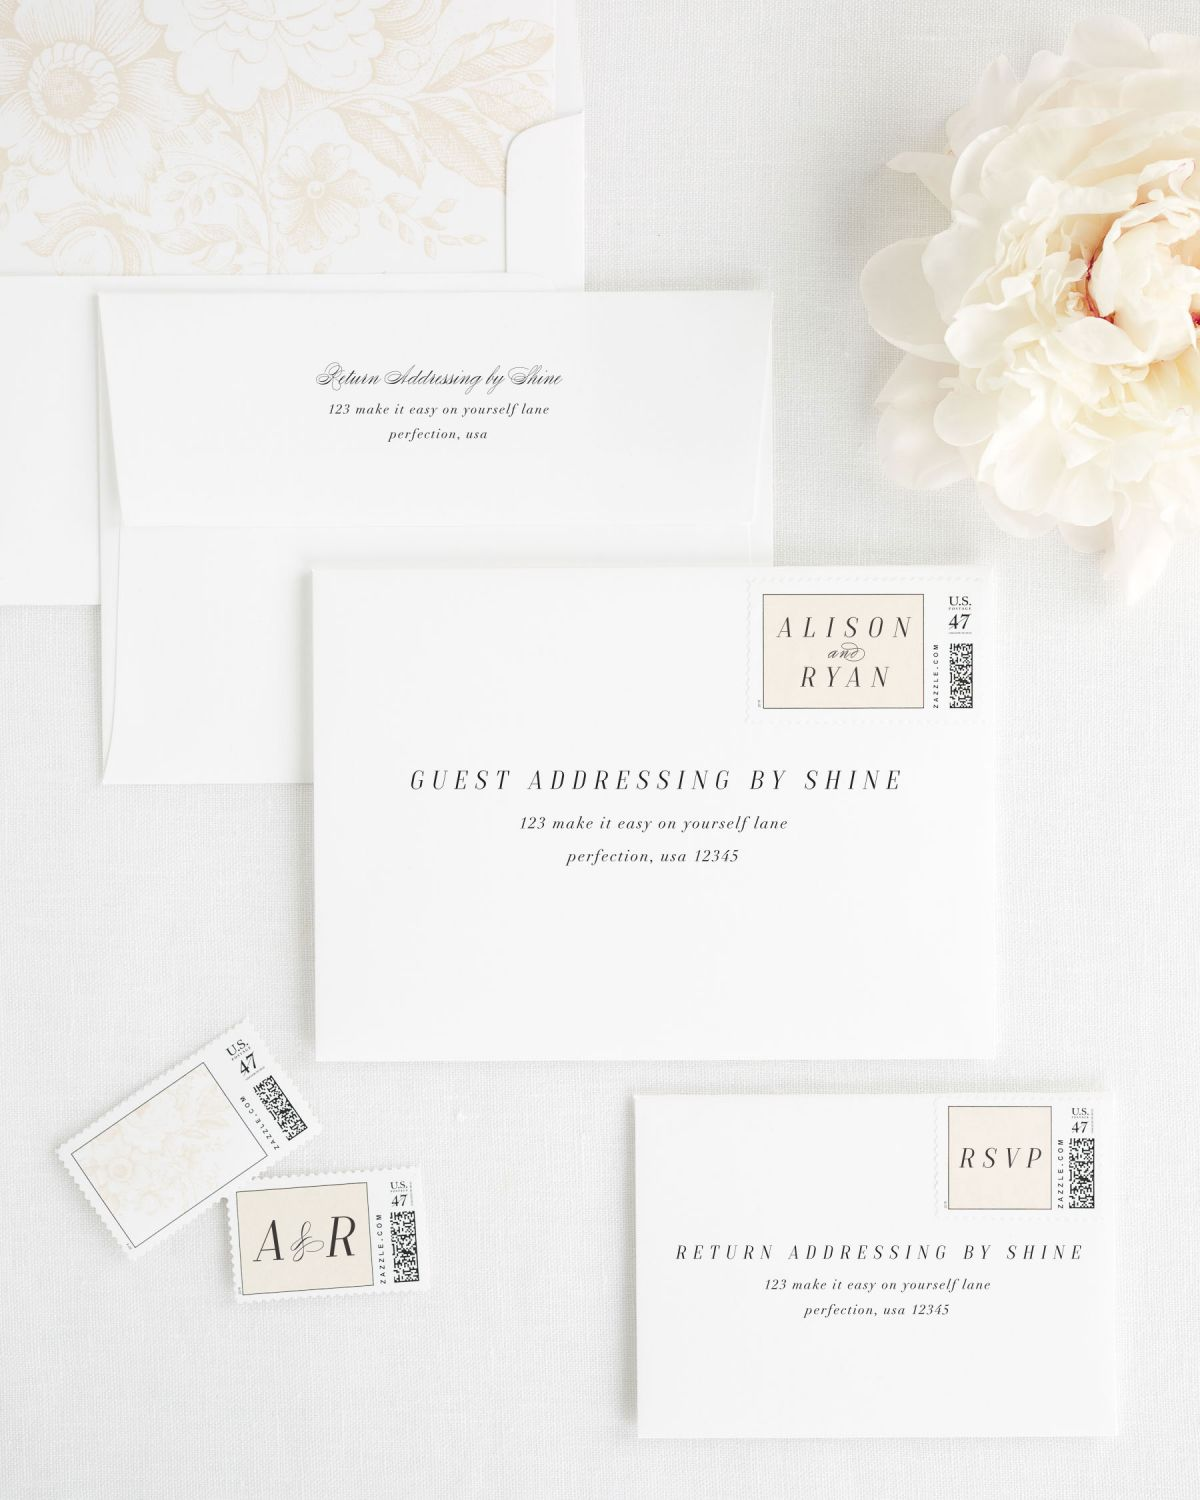 Wedding Invitation envelopes with guest addresing and personalized postage